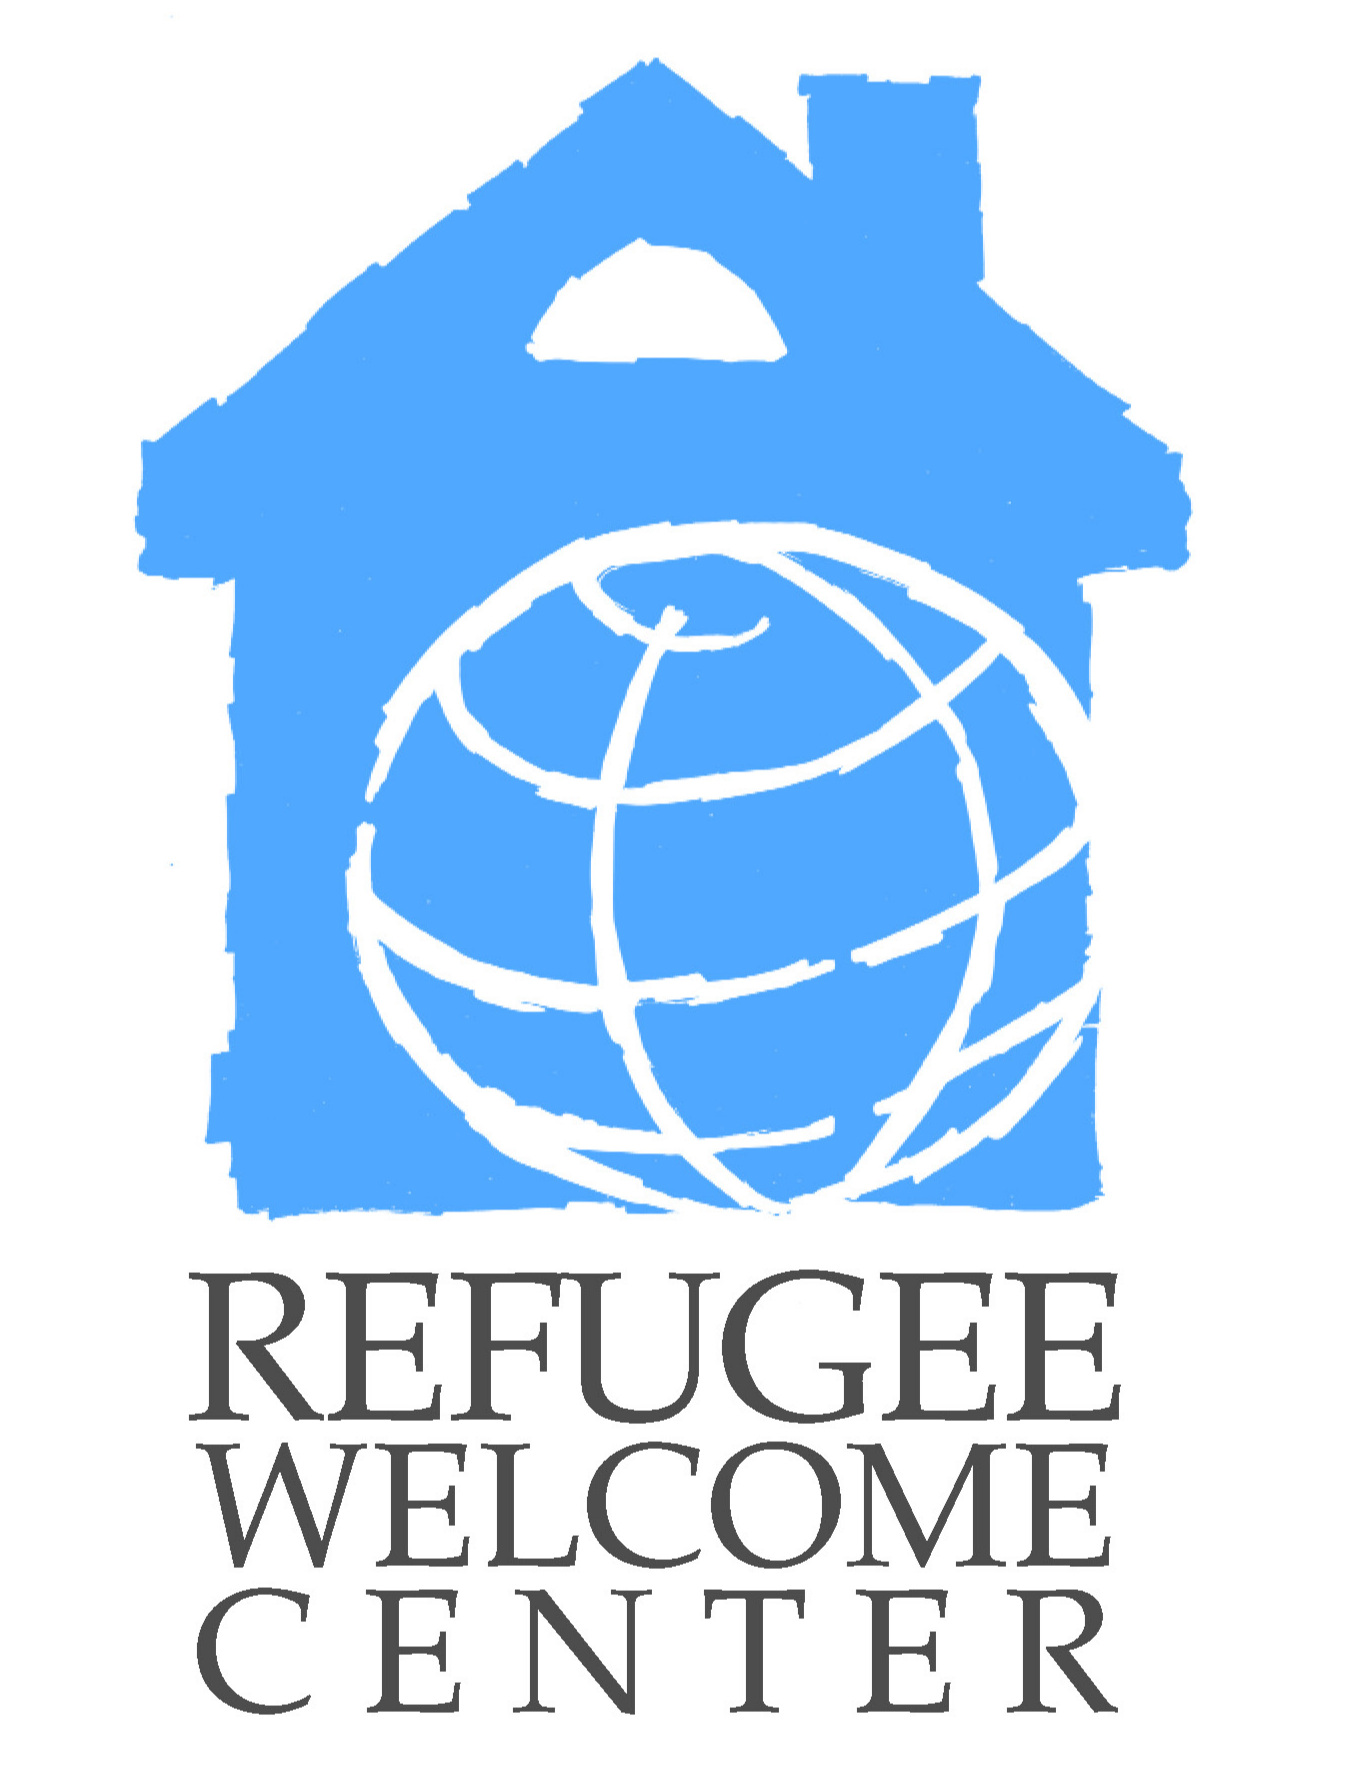 The Refugee Welcome Center